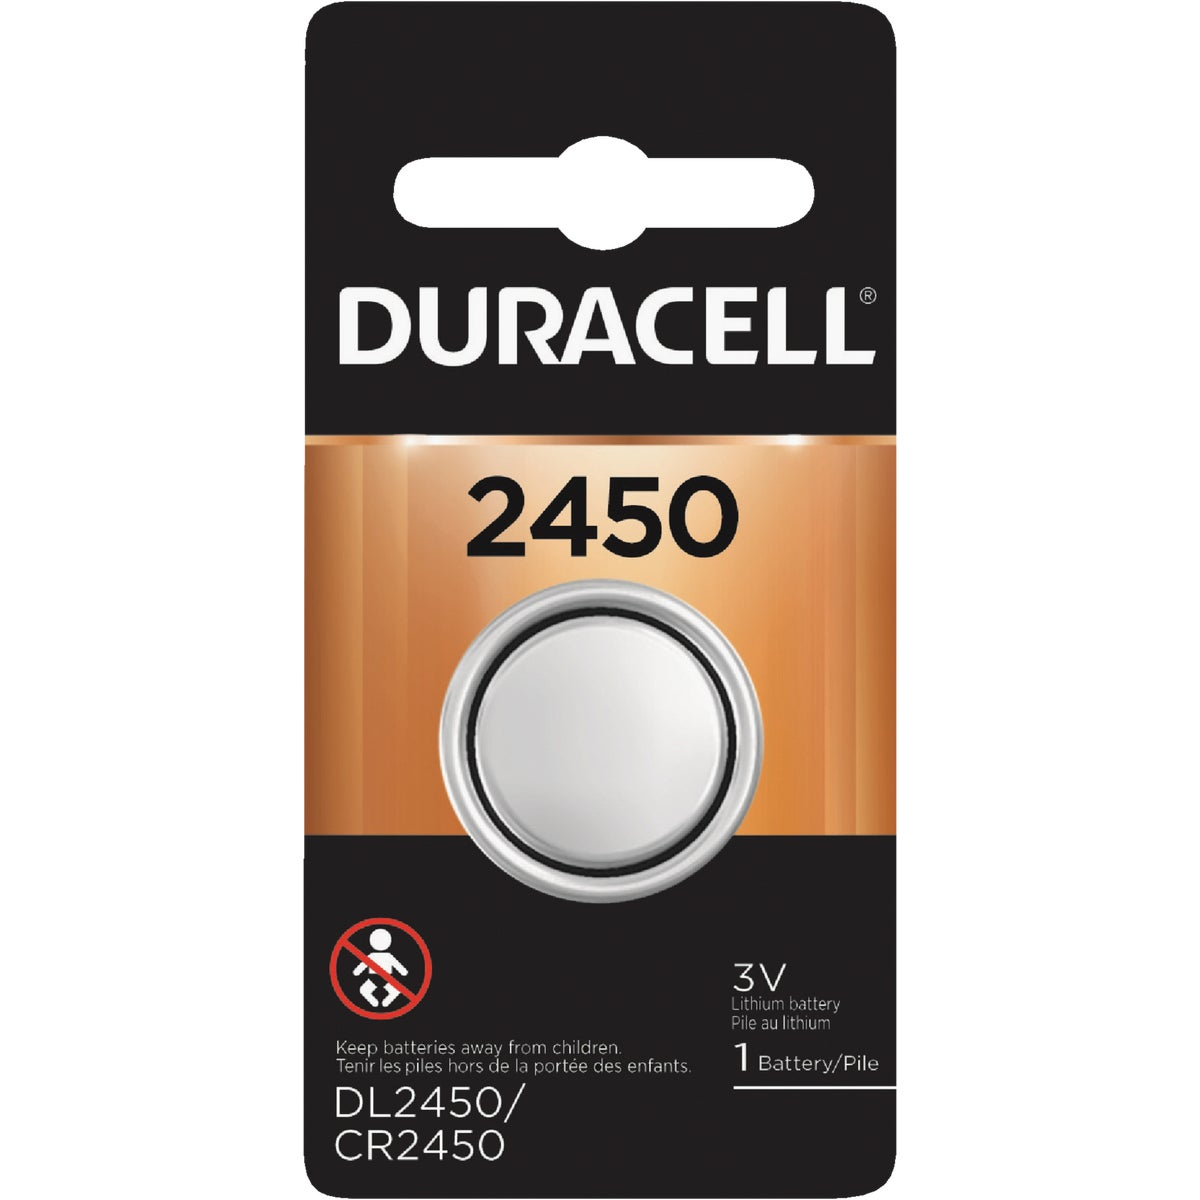 DL2450 3V MED BATTERY